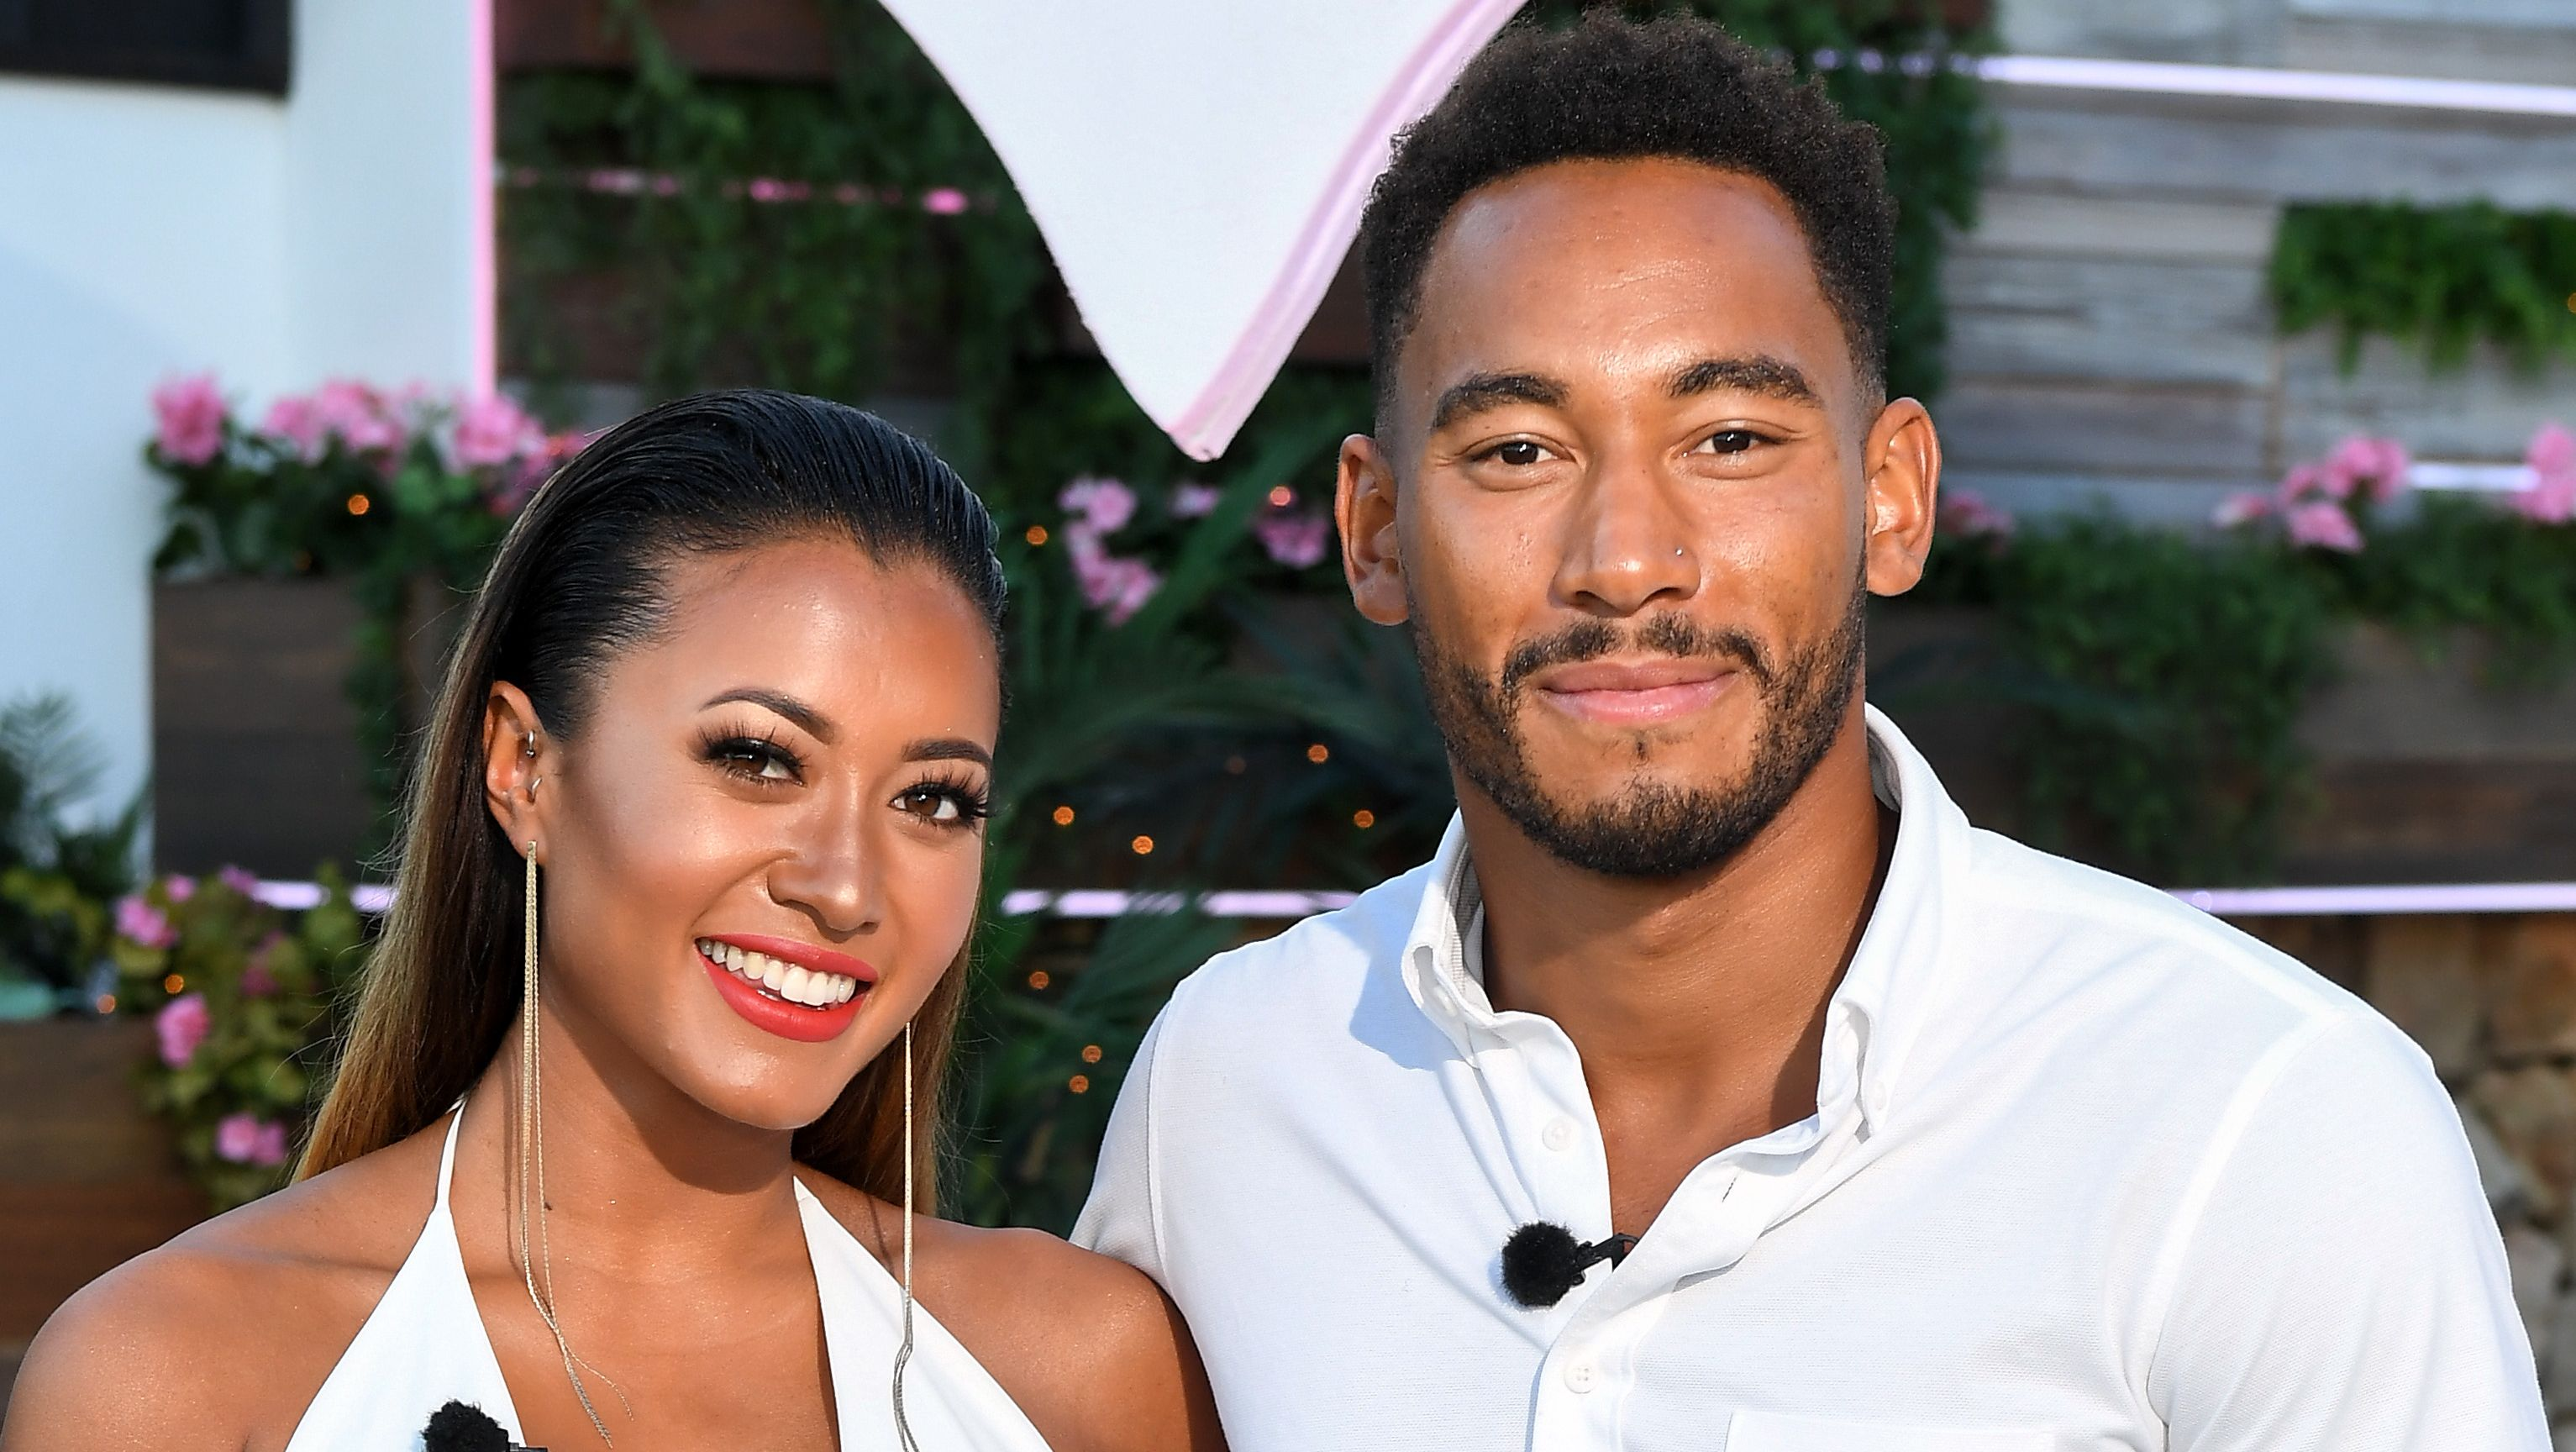 Love Island's Kaz Crossley and Josh Denzel tease fans with baby photo